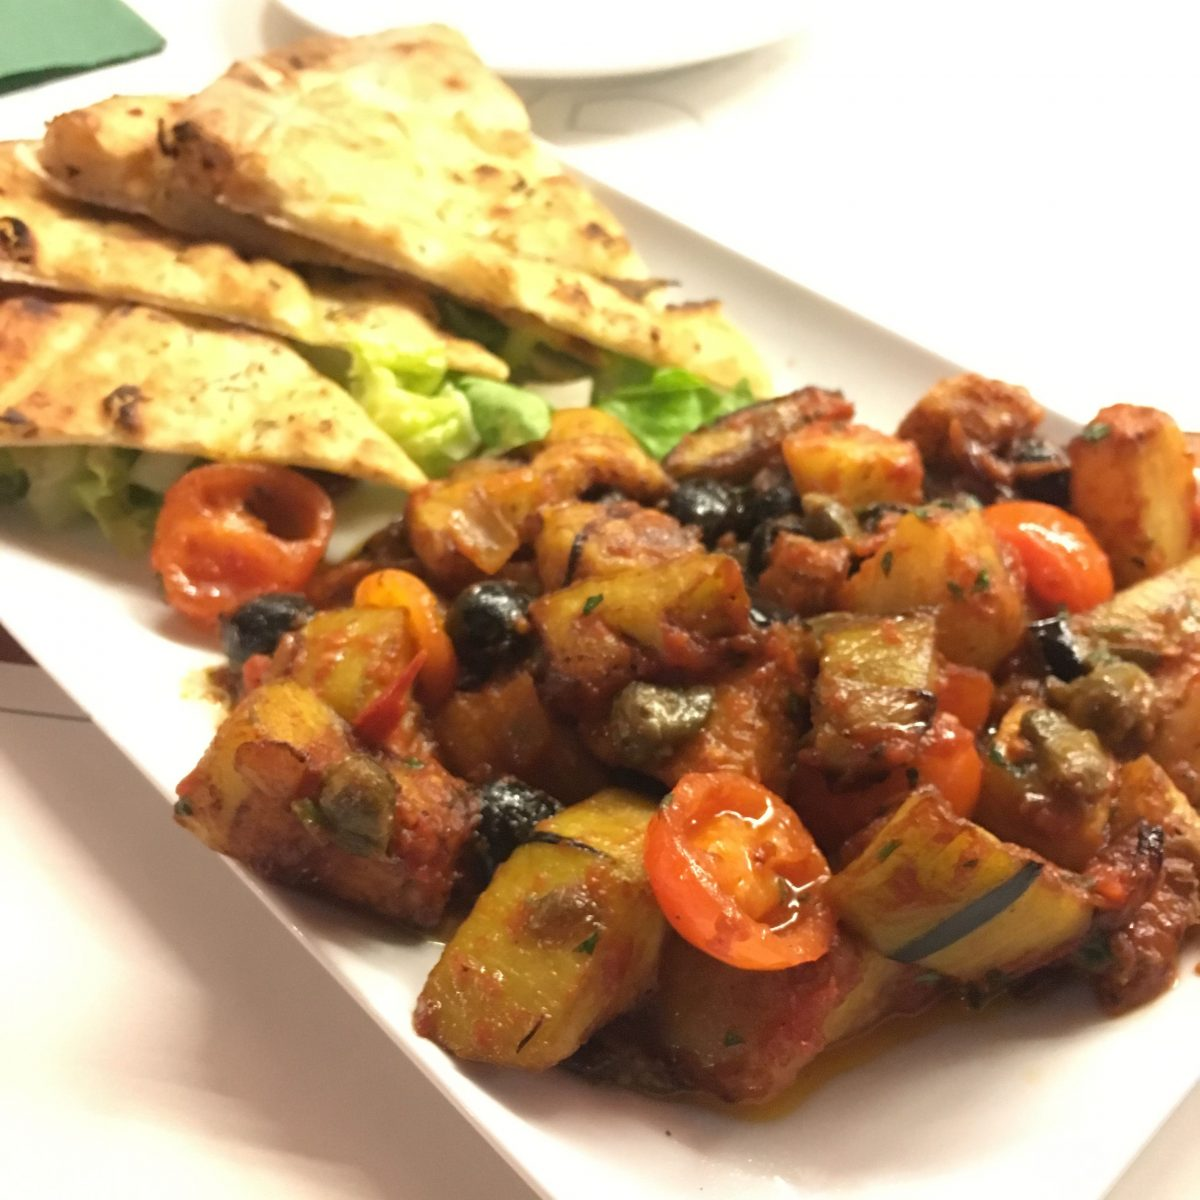 Caponata - a delicious vegan side dish in Italy